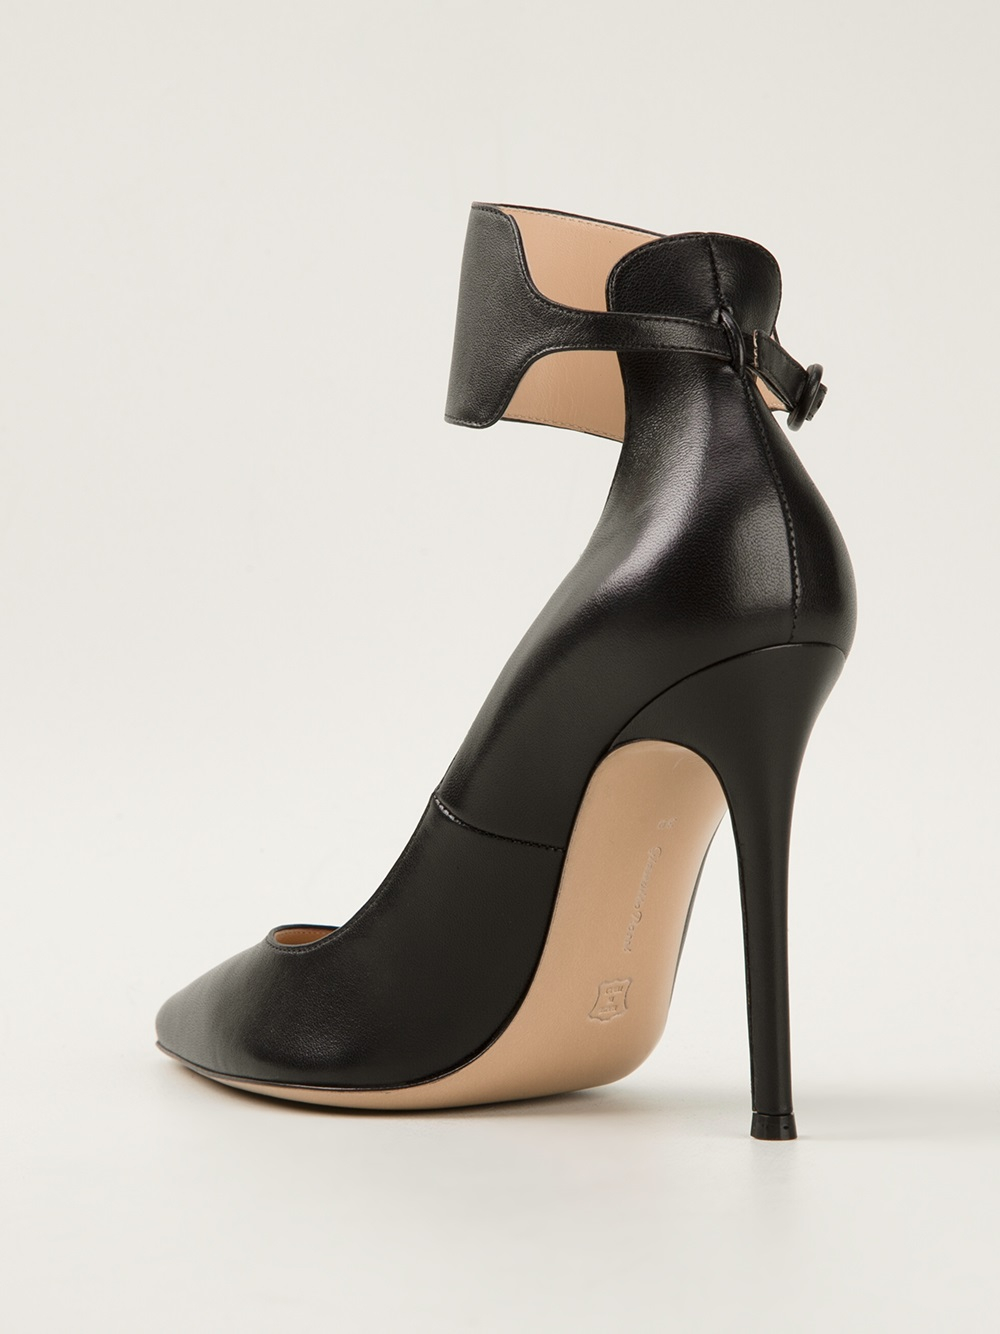 Gianvito Rossi Ankle Strap Pumps In Black Lyst